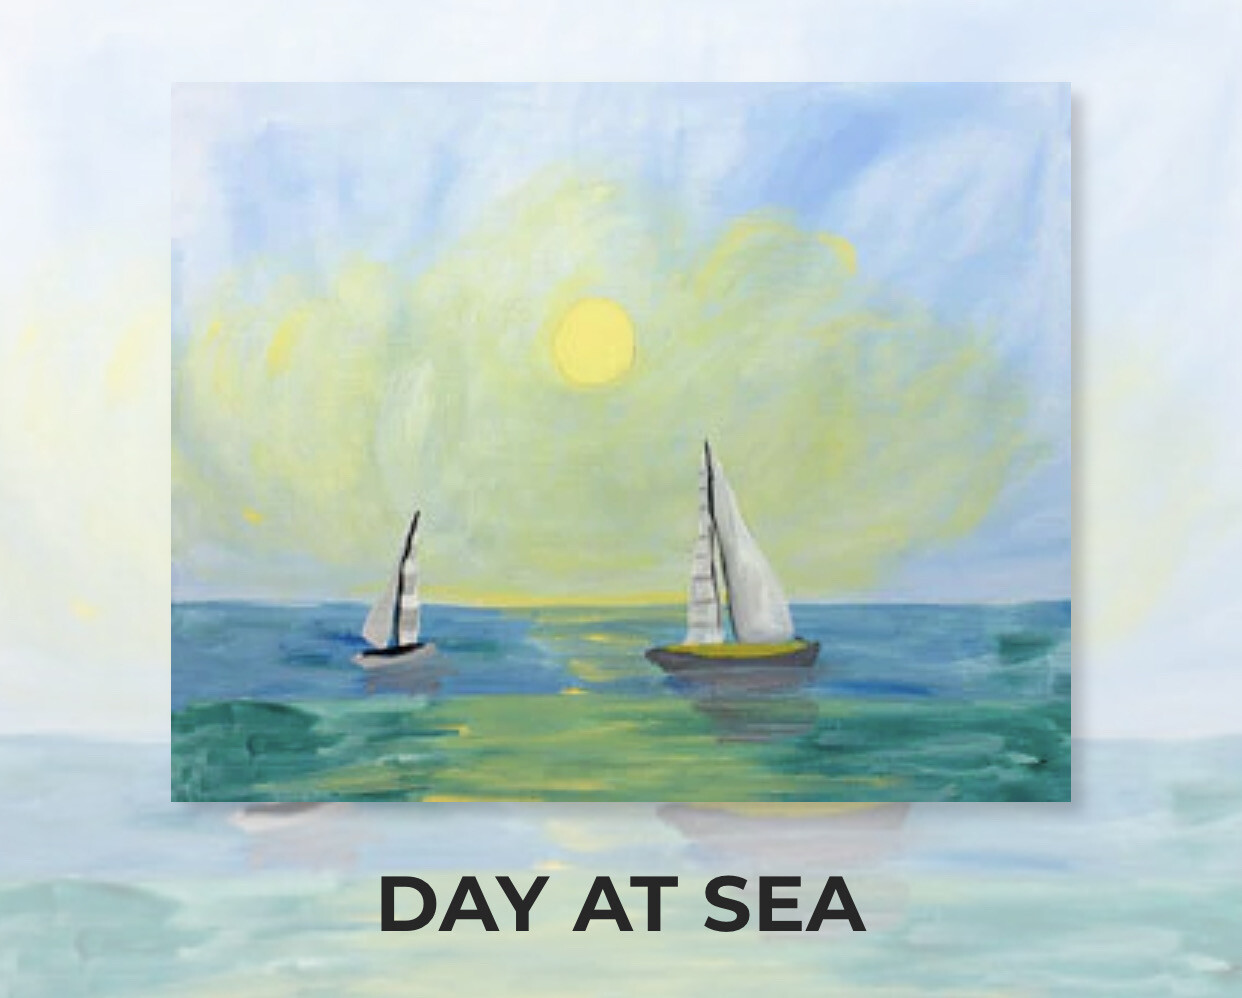 Day At Sea ADULT Acrylic Paint On Canvas DIY Art Kit  - 3 Week Special Order